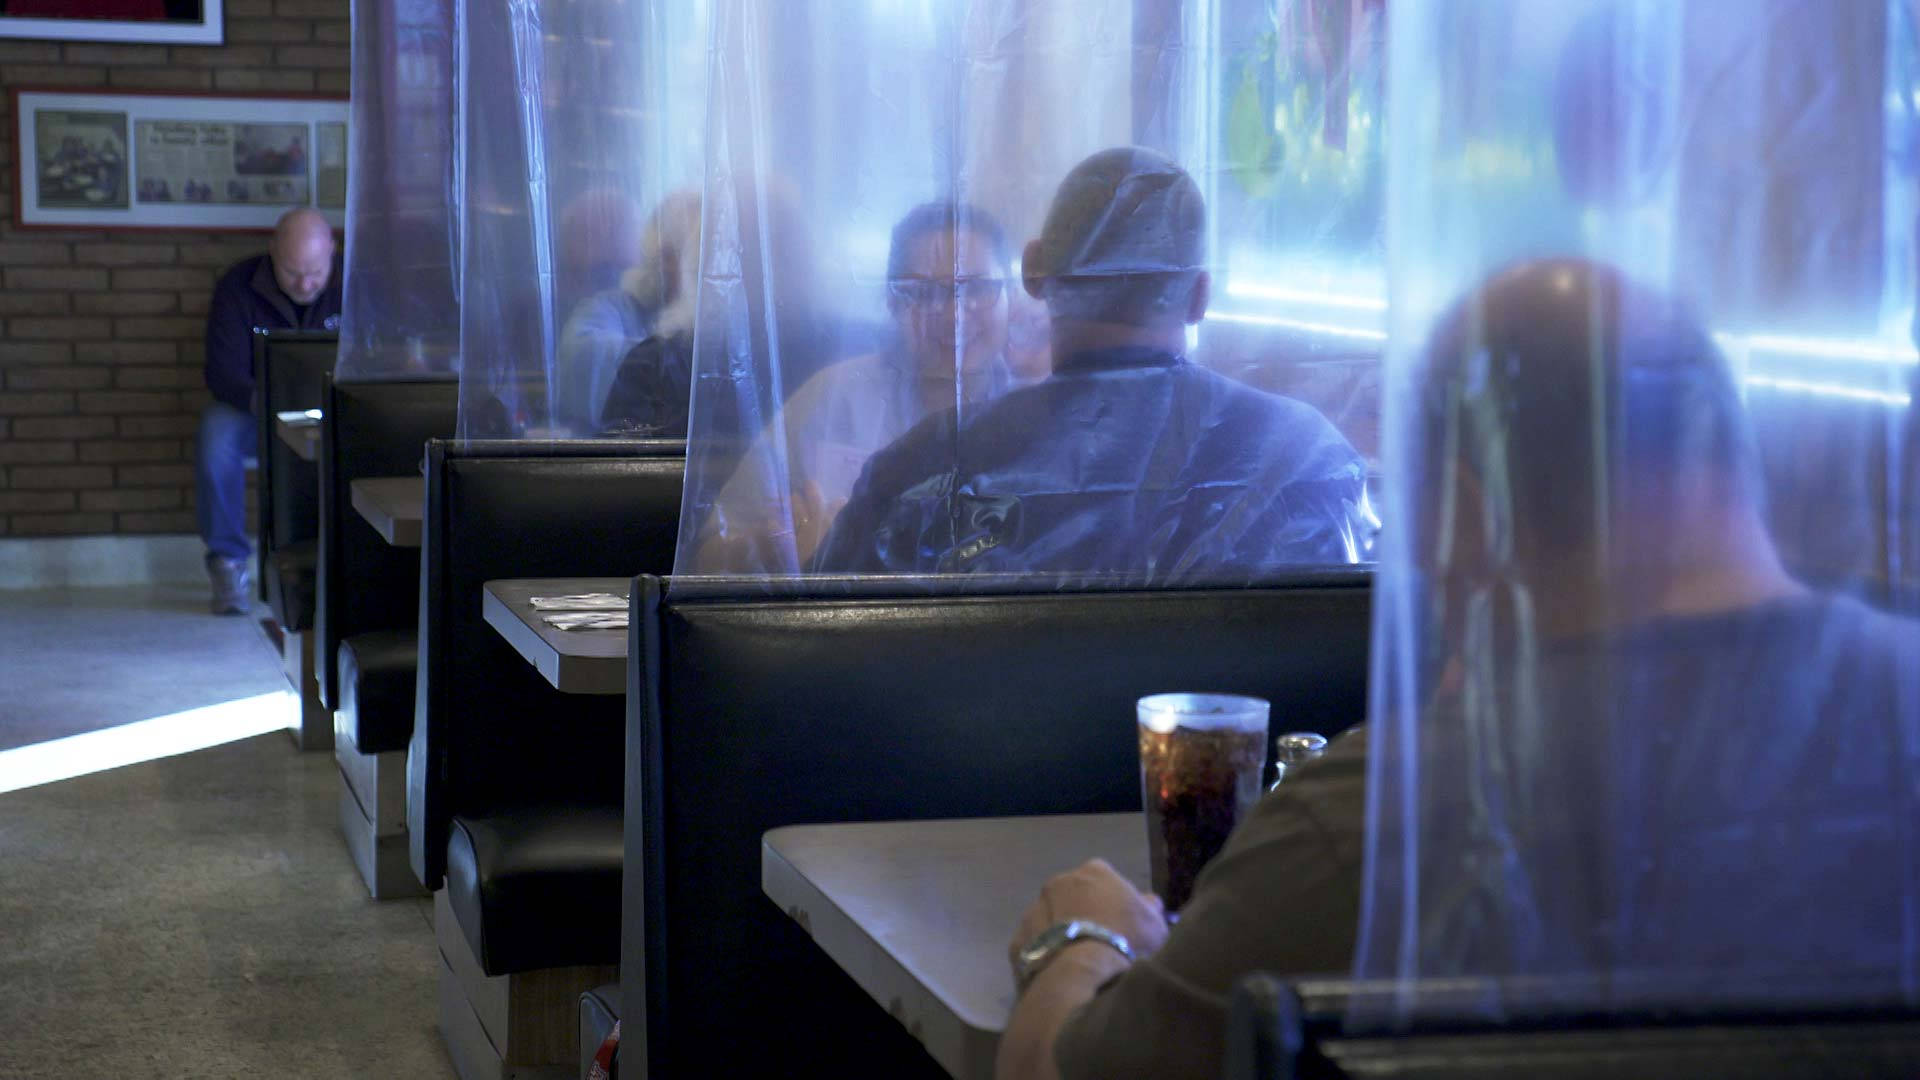 Plastic separates booths as customers dine at Gus Balon's Restaurant in Tucson. November 2020.